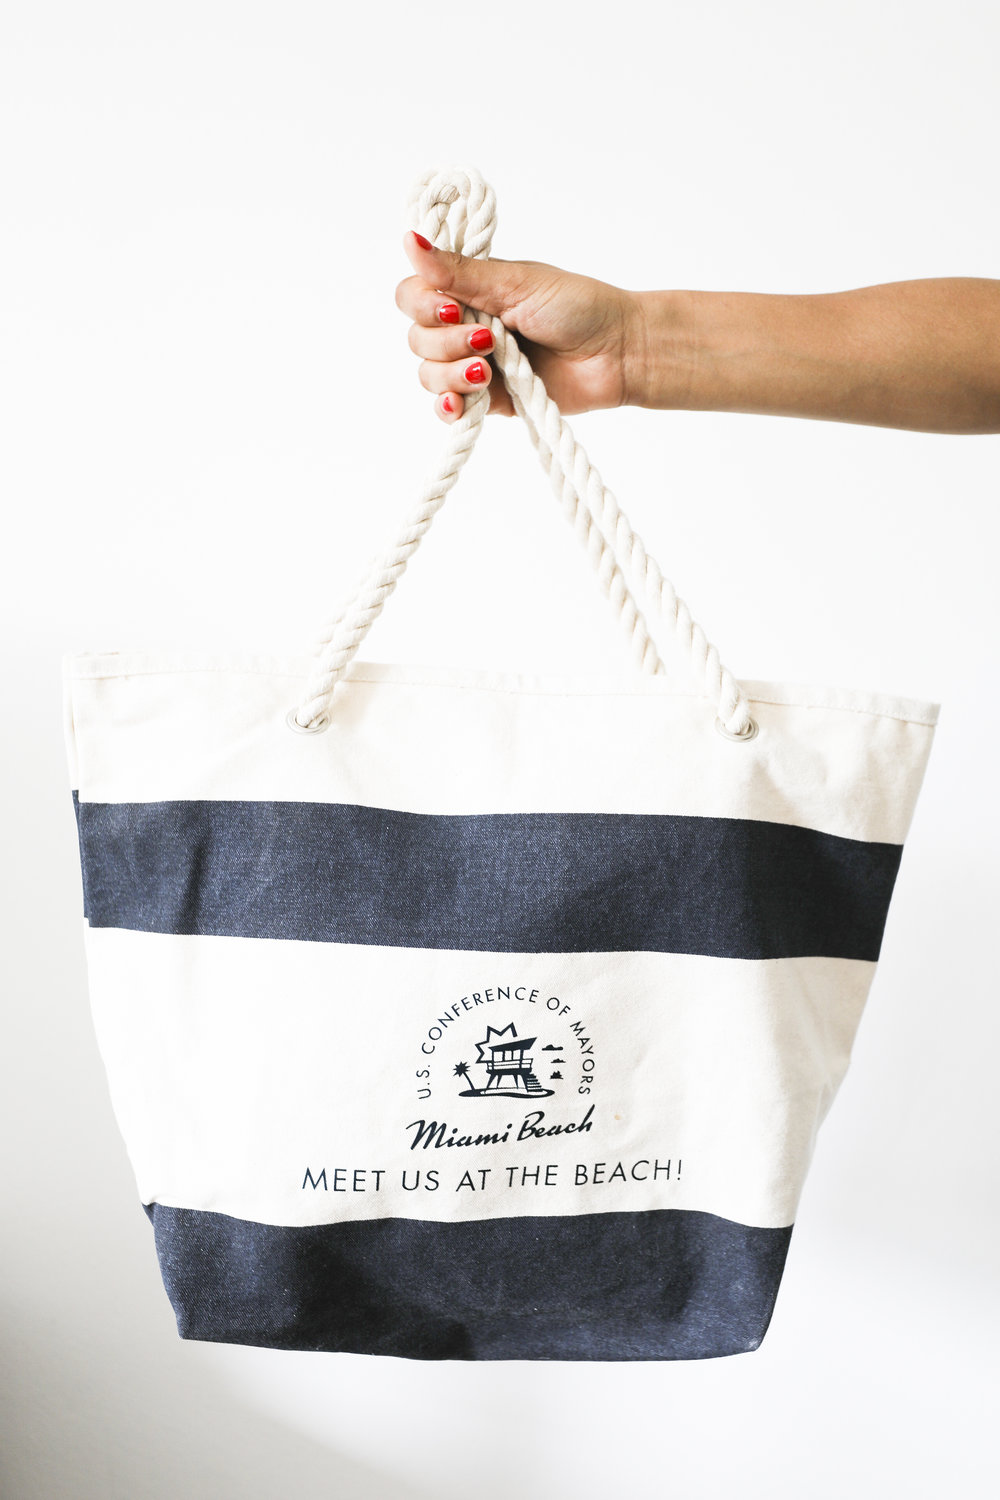 Tote from the U.S. Conference of Mayors in Miami this year